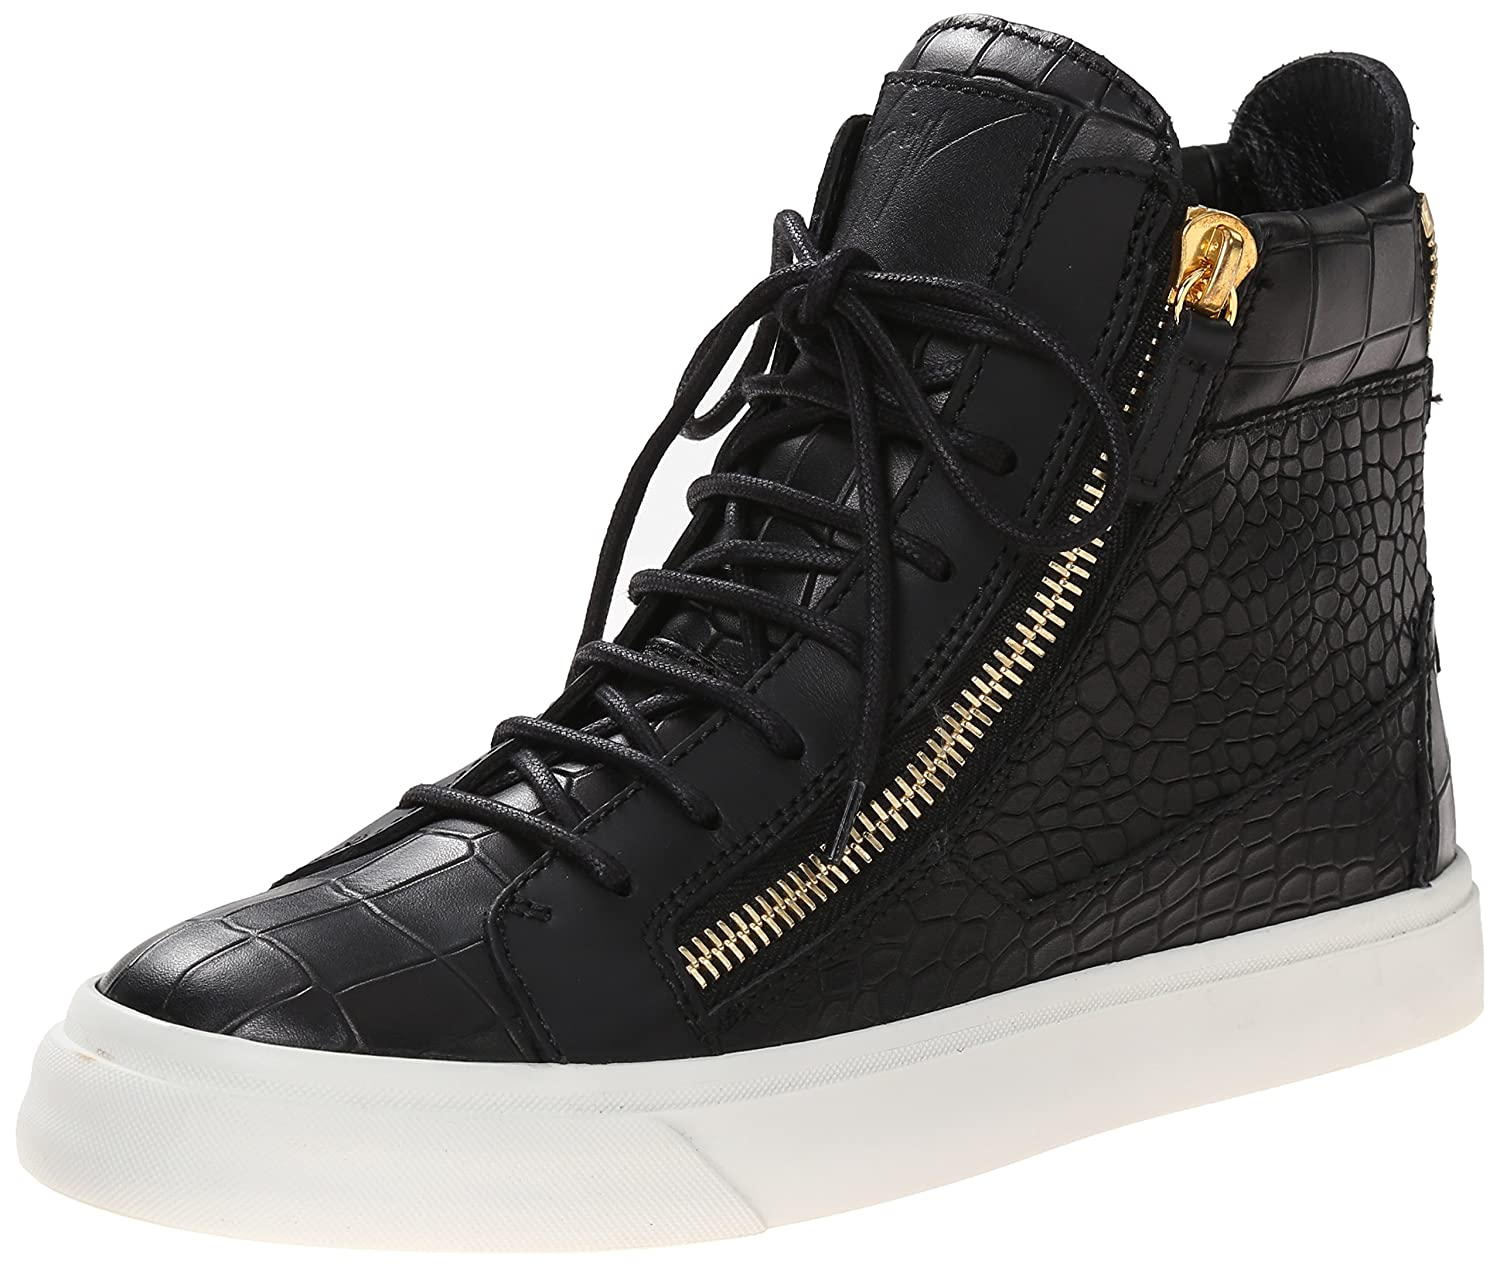 Black Fashion Sneakers Women Giuseppe Zanotti Women s High